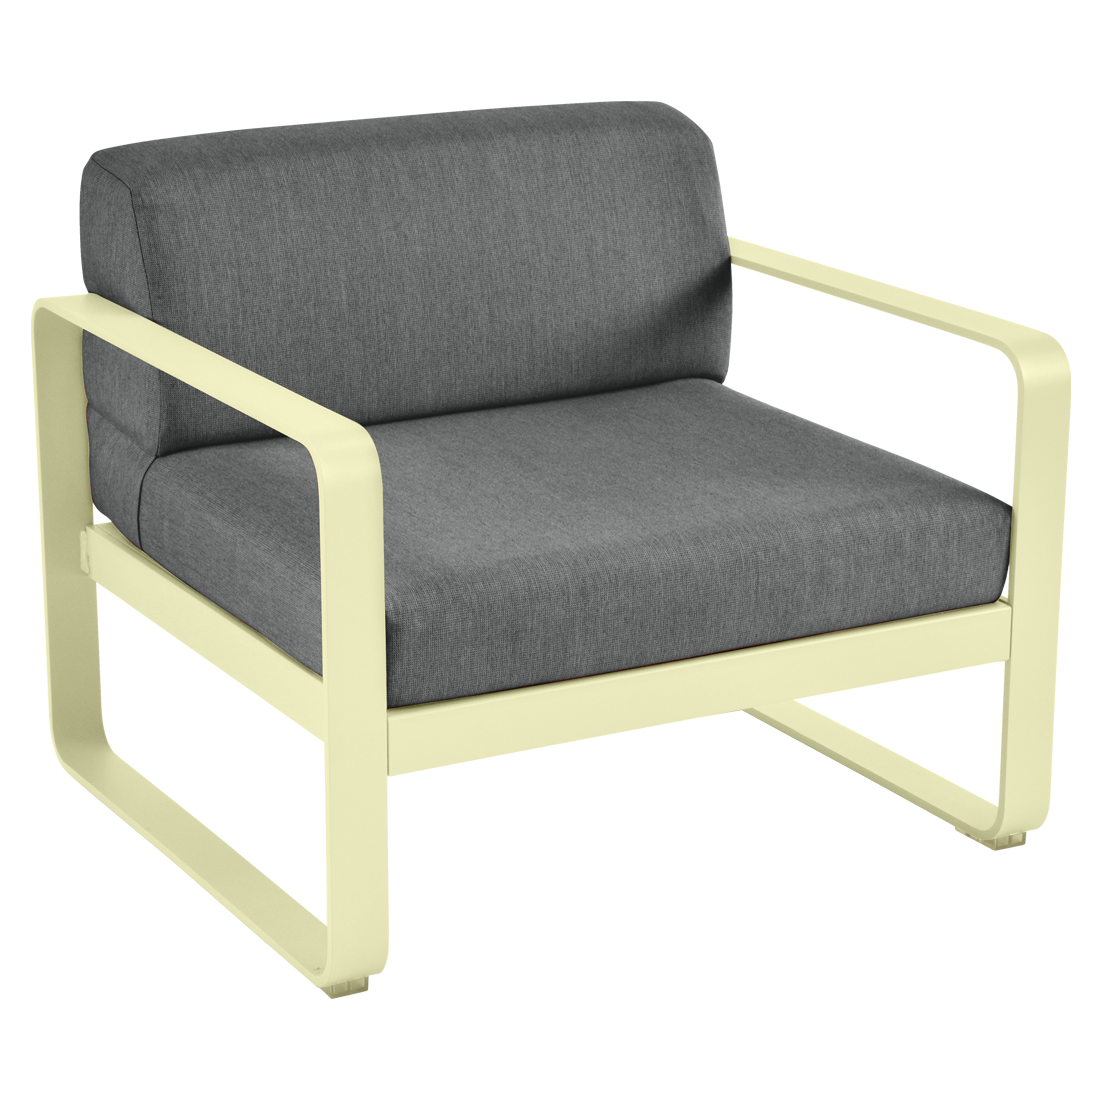 FERMOB Bellevie Armchair with Graphite Cushions